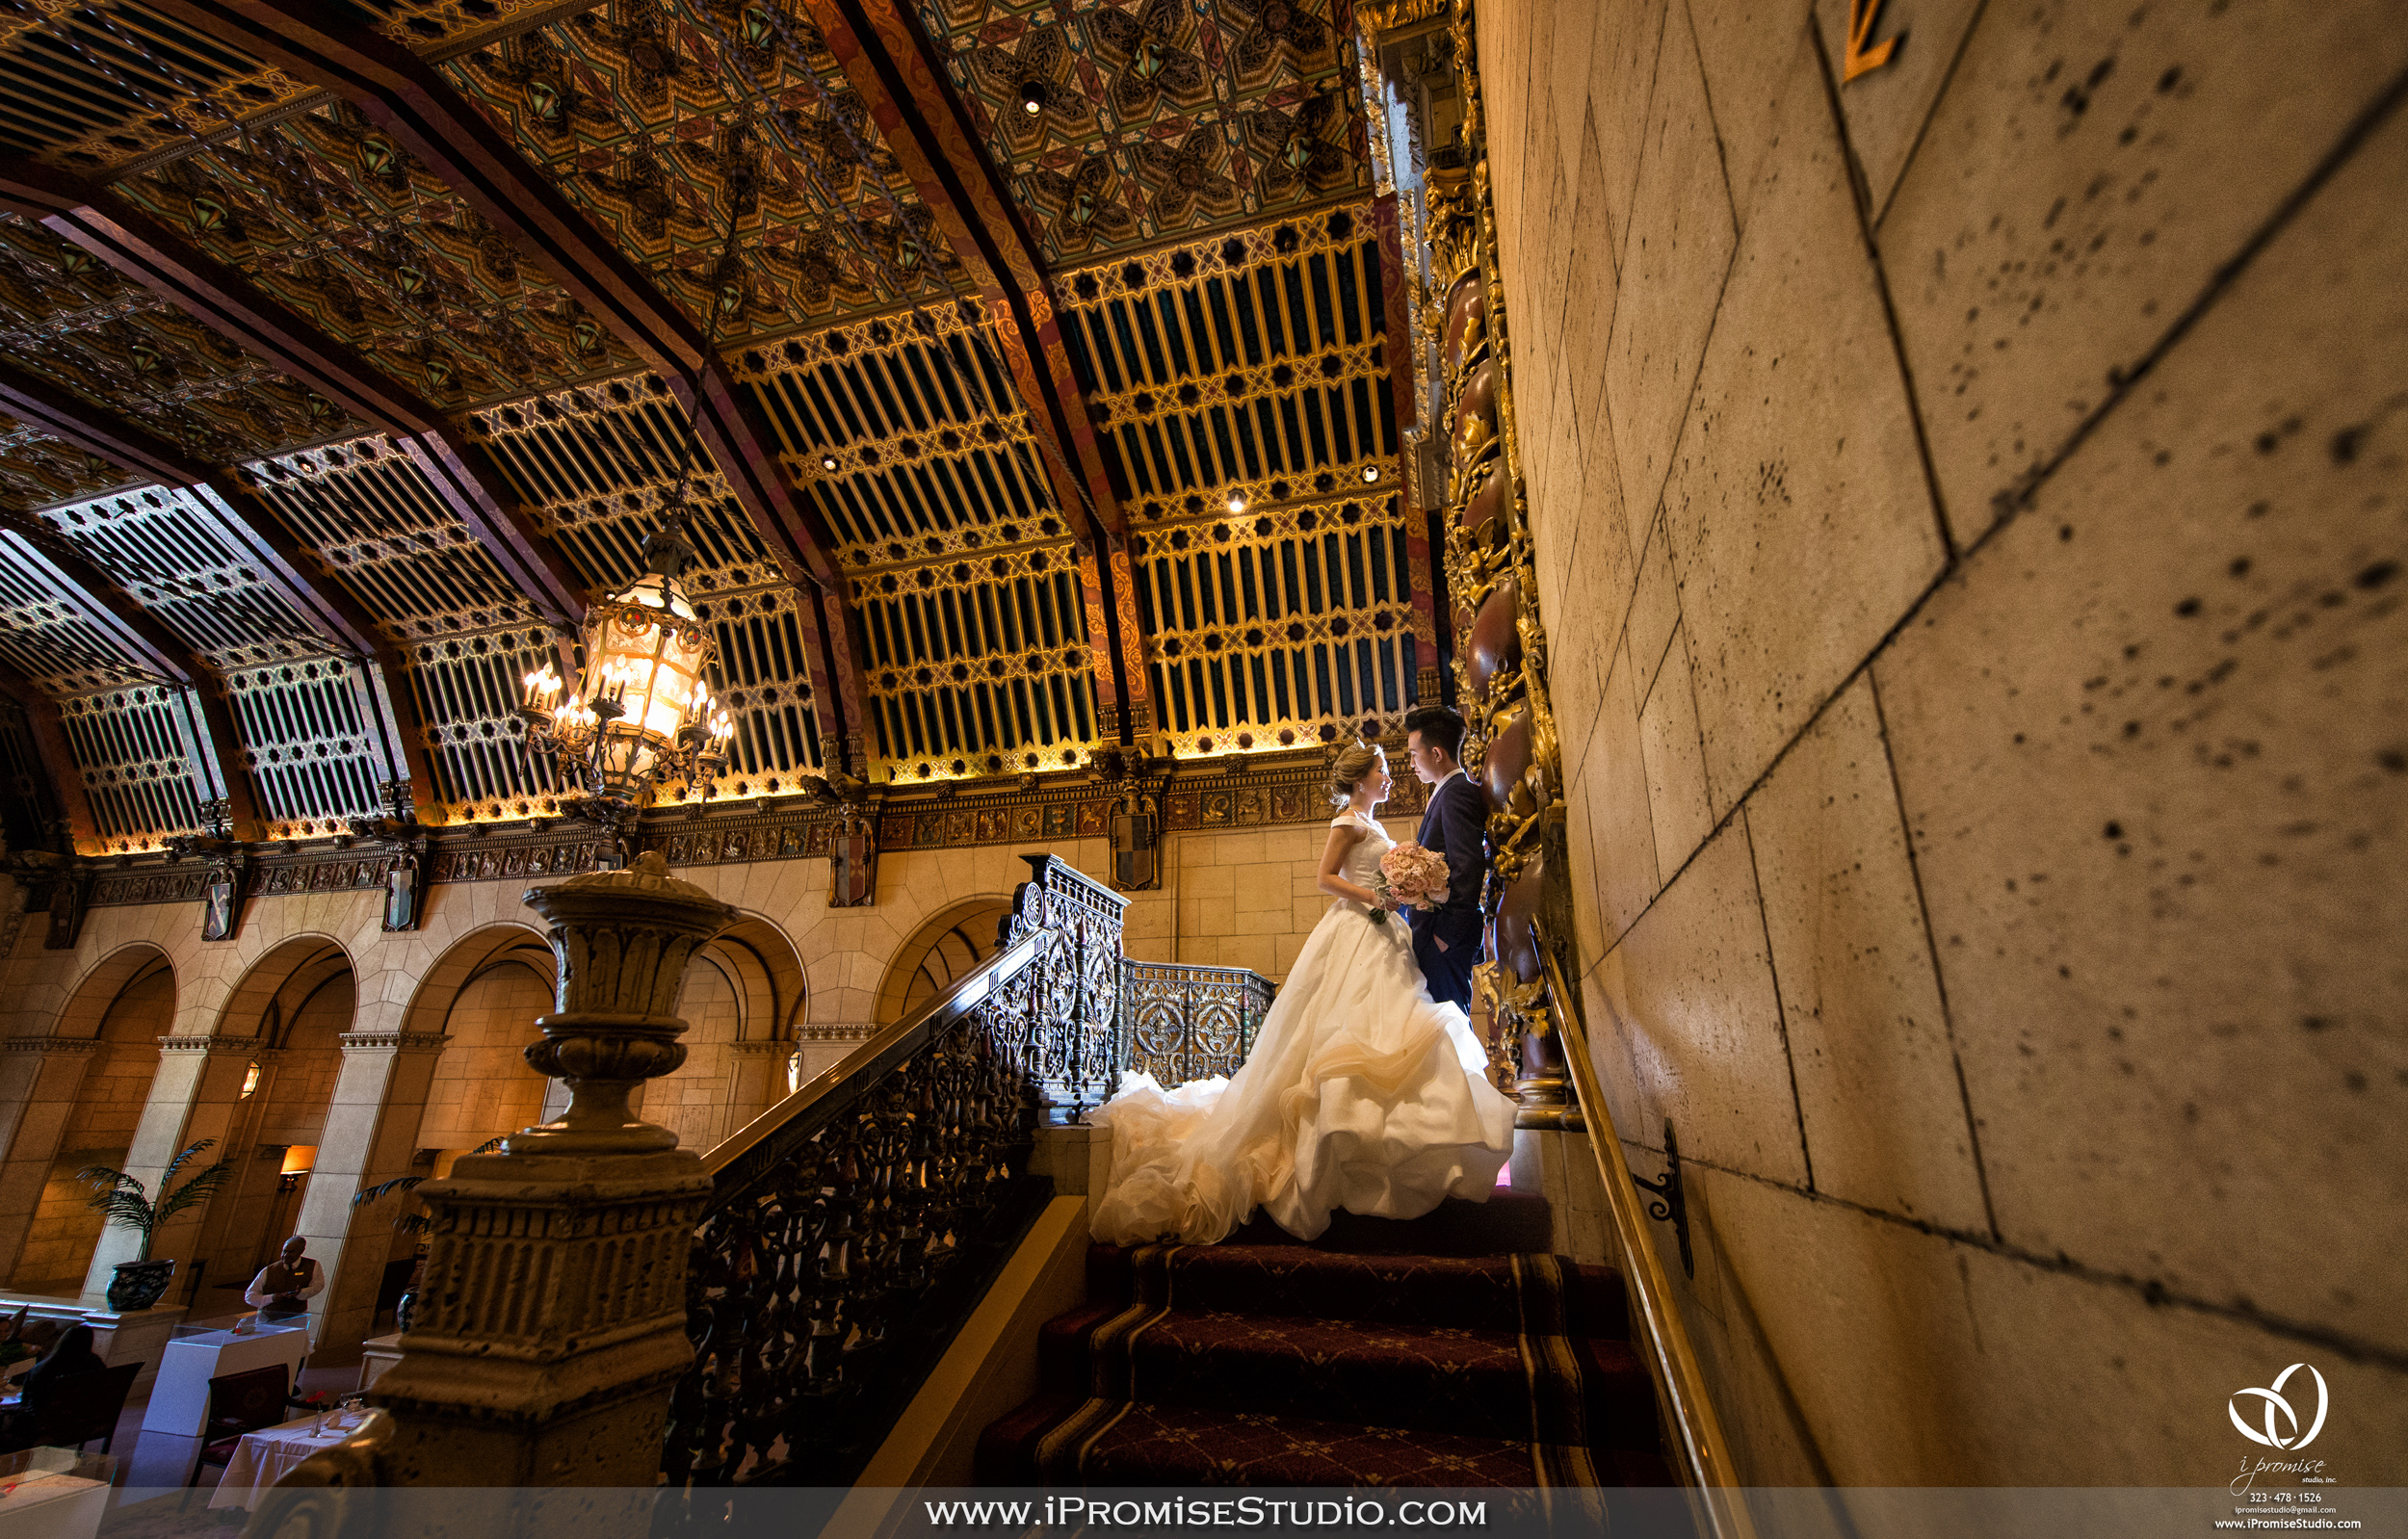 LA Millennium Biltmore Hotel-engagement wedding 02.JPG